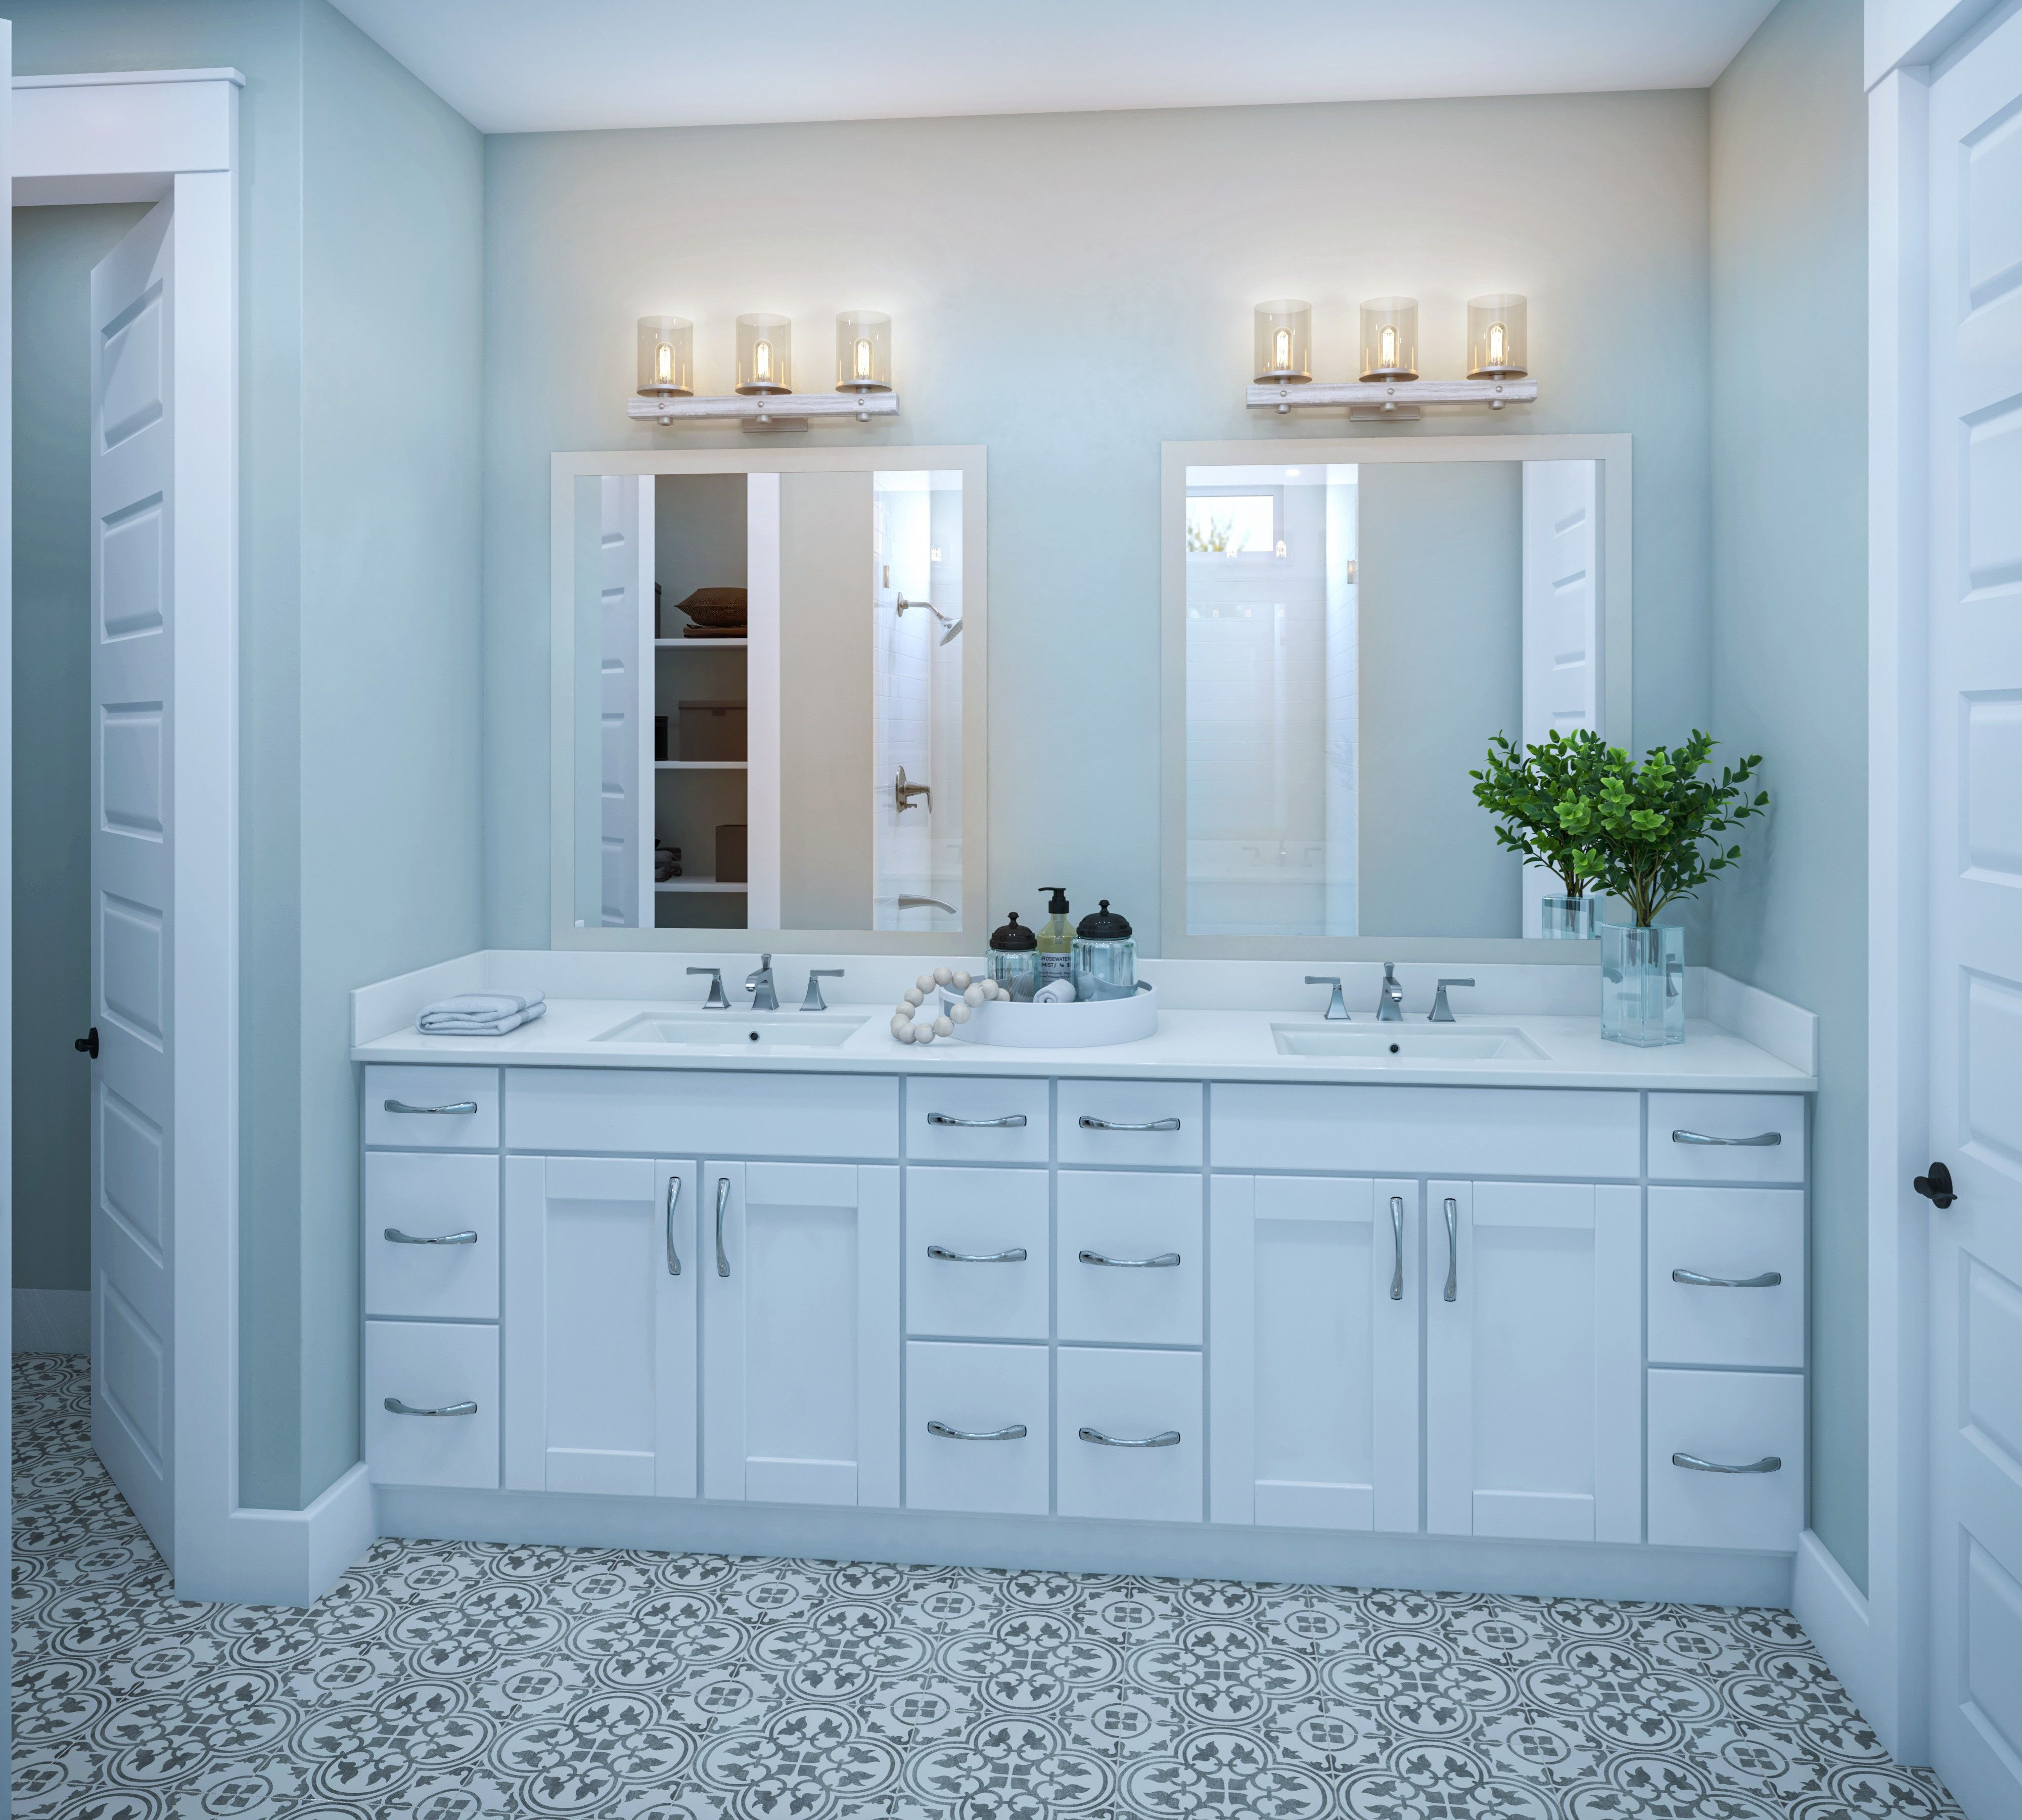 Bathroom featured in the Capers By K. Hovnanian® Homes in Charleston, SC